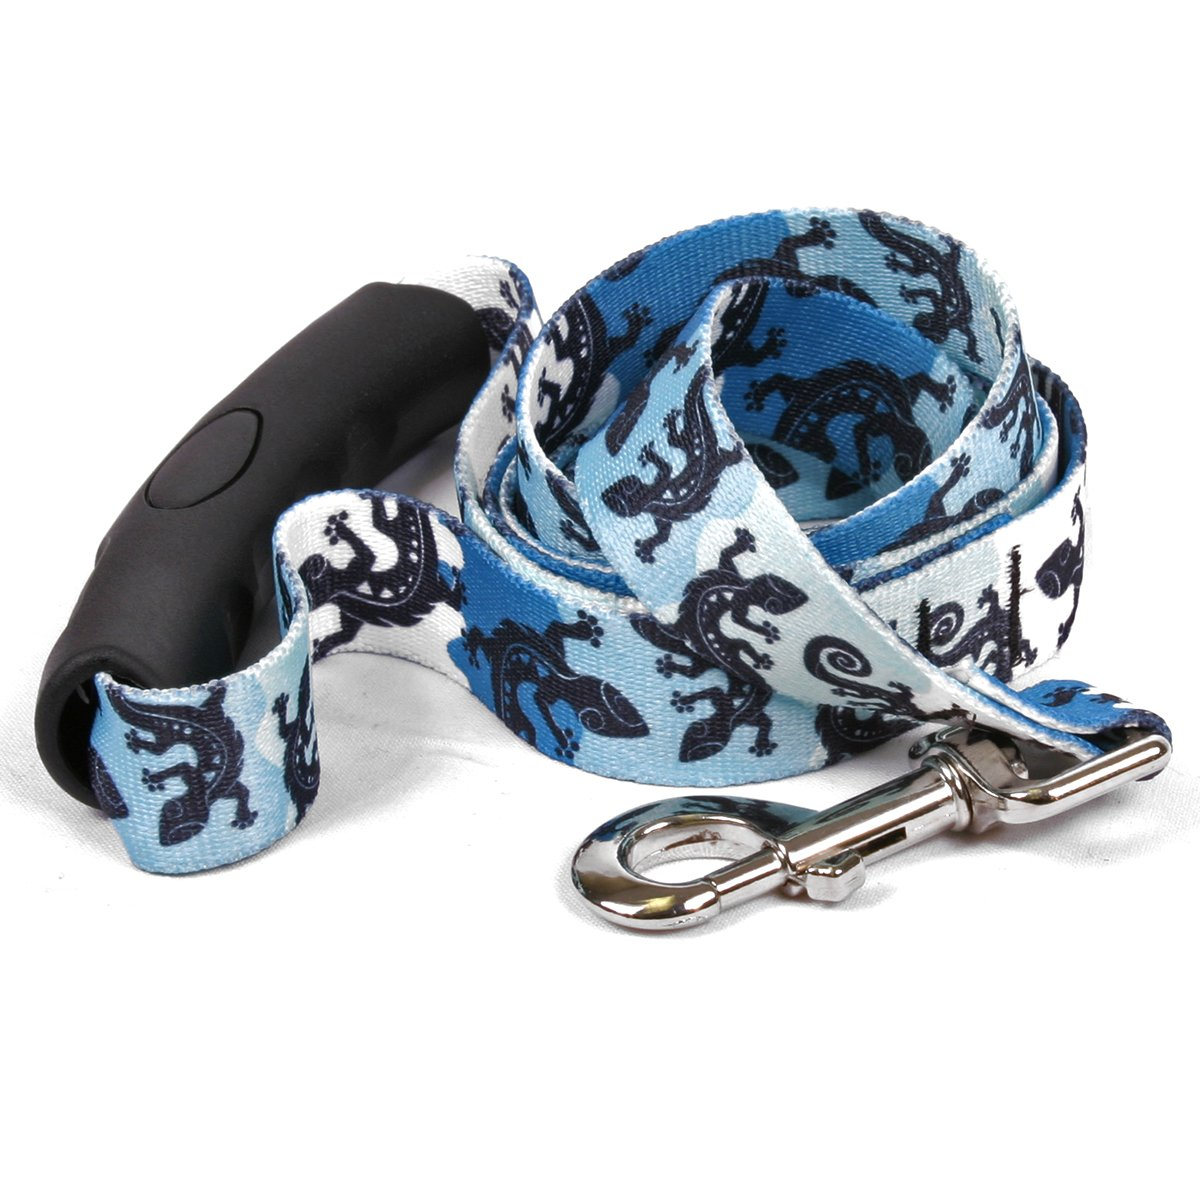 Yellow Dog Design Geckos Teal Ez-Grip Dog Leash with Comfort Handle 3/4'' Wide and 5' (60'') Long, Small/Medium